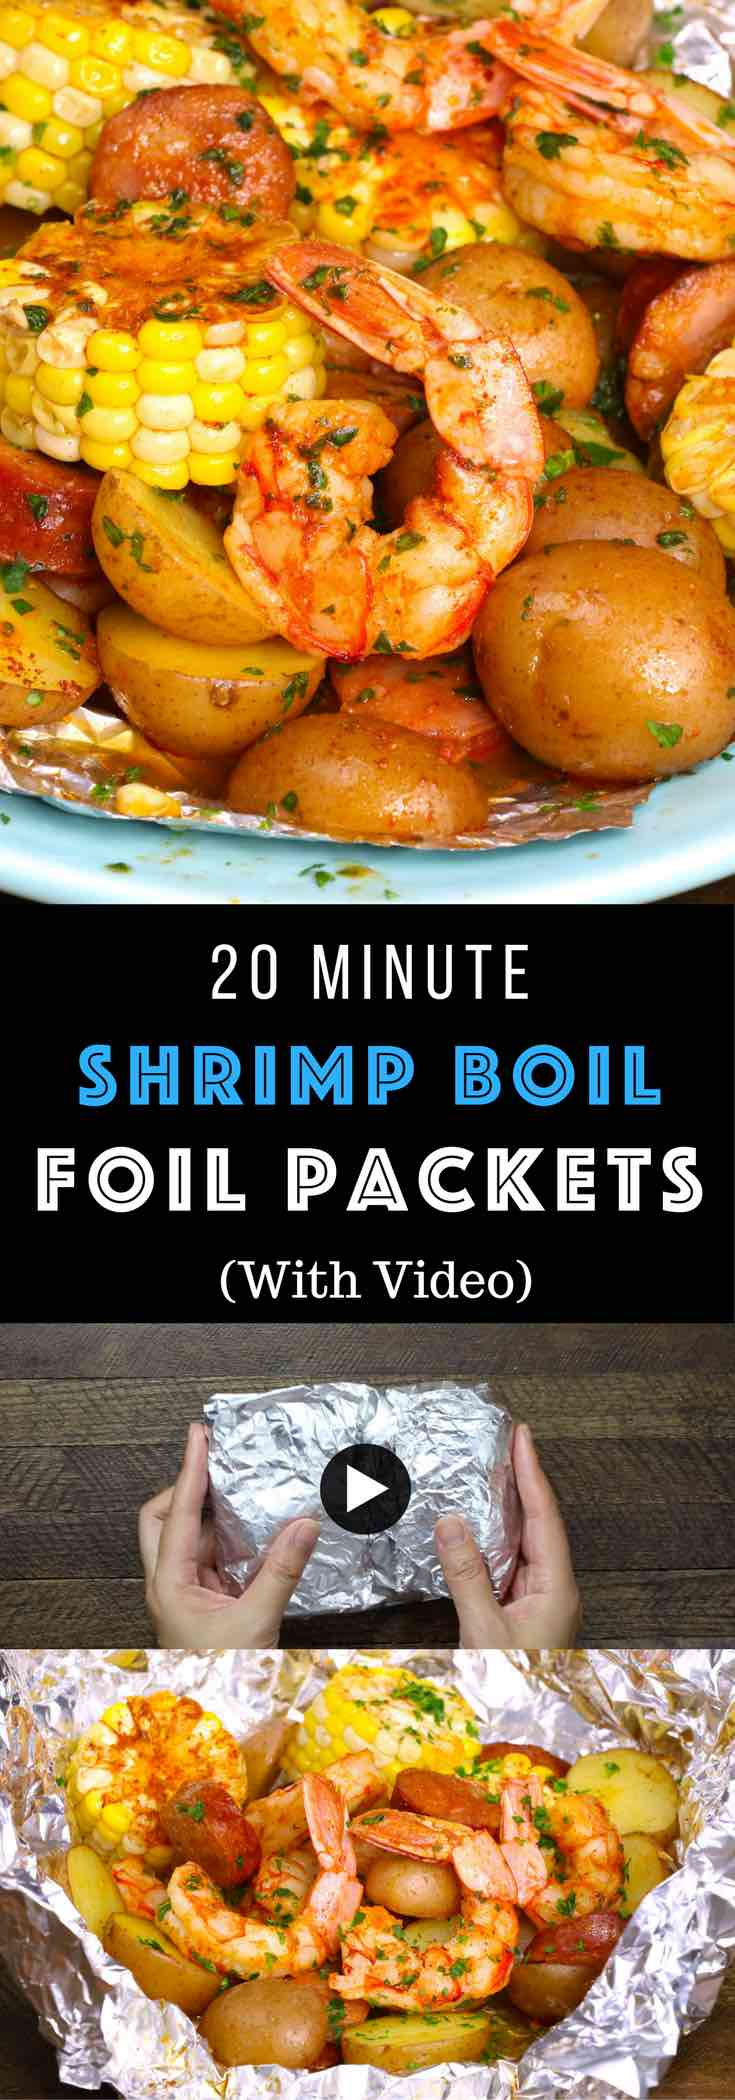 These Shrimp Foil Packets are bursting with delicious Cajun flavors! Made with shrimp, potatoes, corn and sausage and grilled or baked until tender and juicy. Perfect for a party, backyard BBQ or casual summer dinner. Cleanup is a breeze! Quick and Easy dinner recipe.